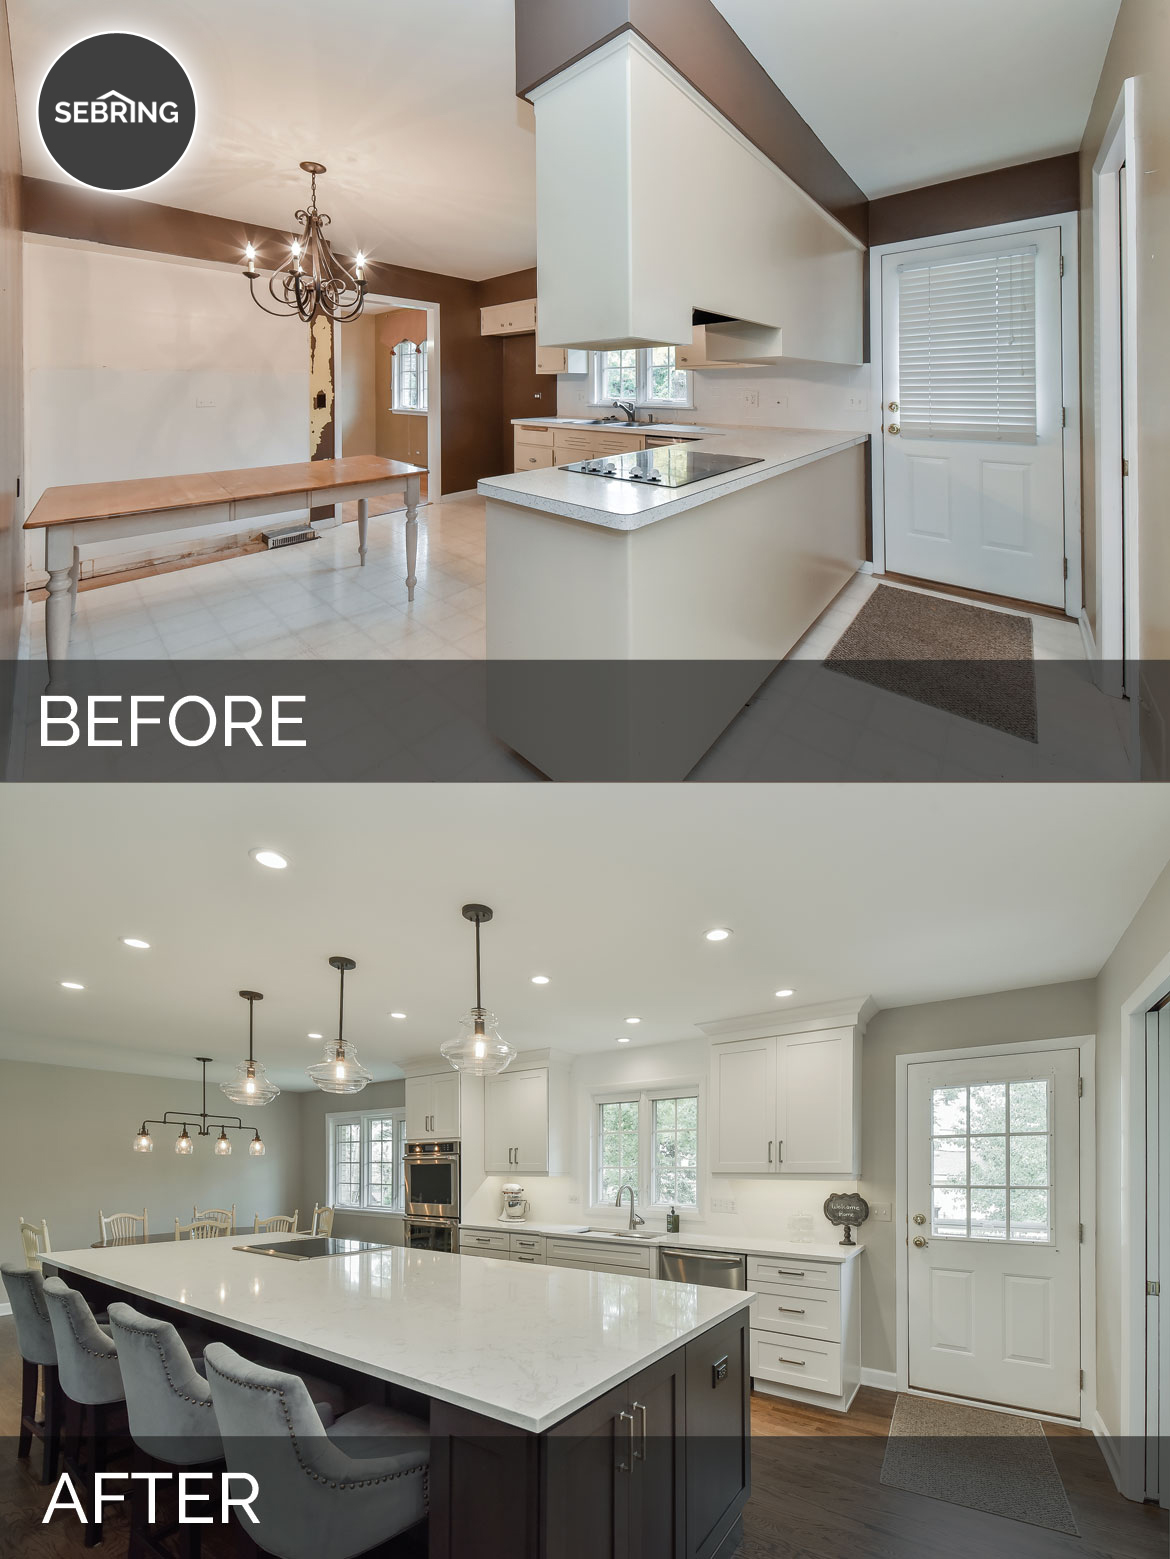 Tremendous Dale Traceys Kitchen Before After Pictures Home Best Image Libraries Thycampuscom